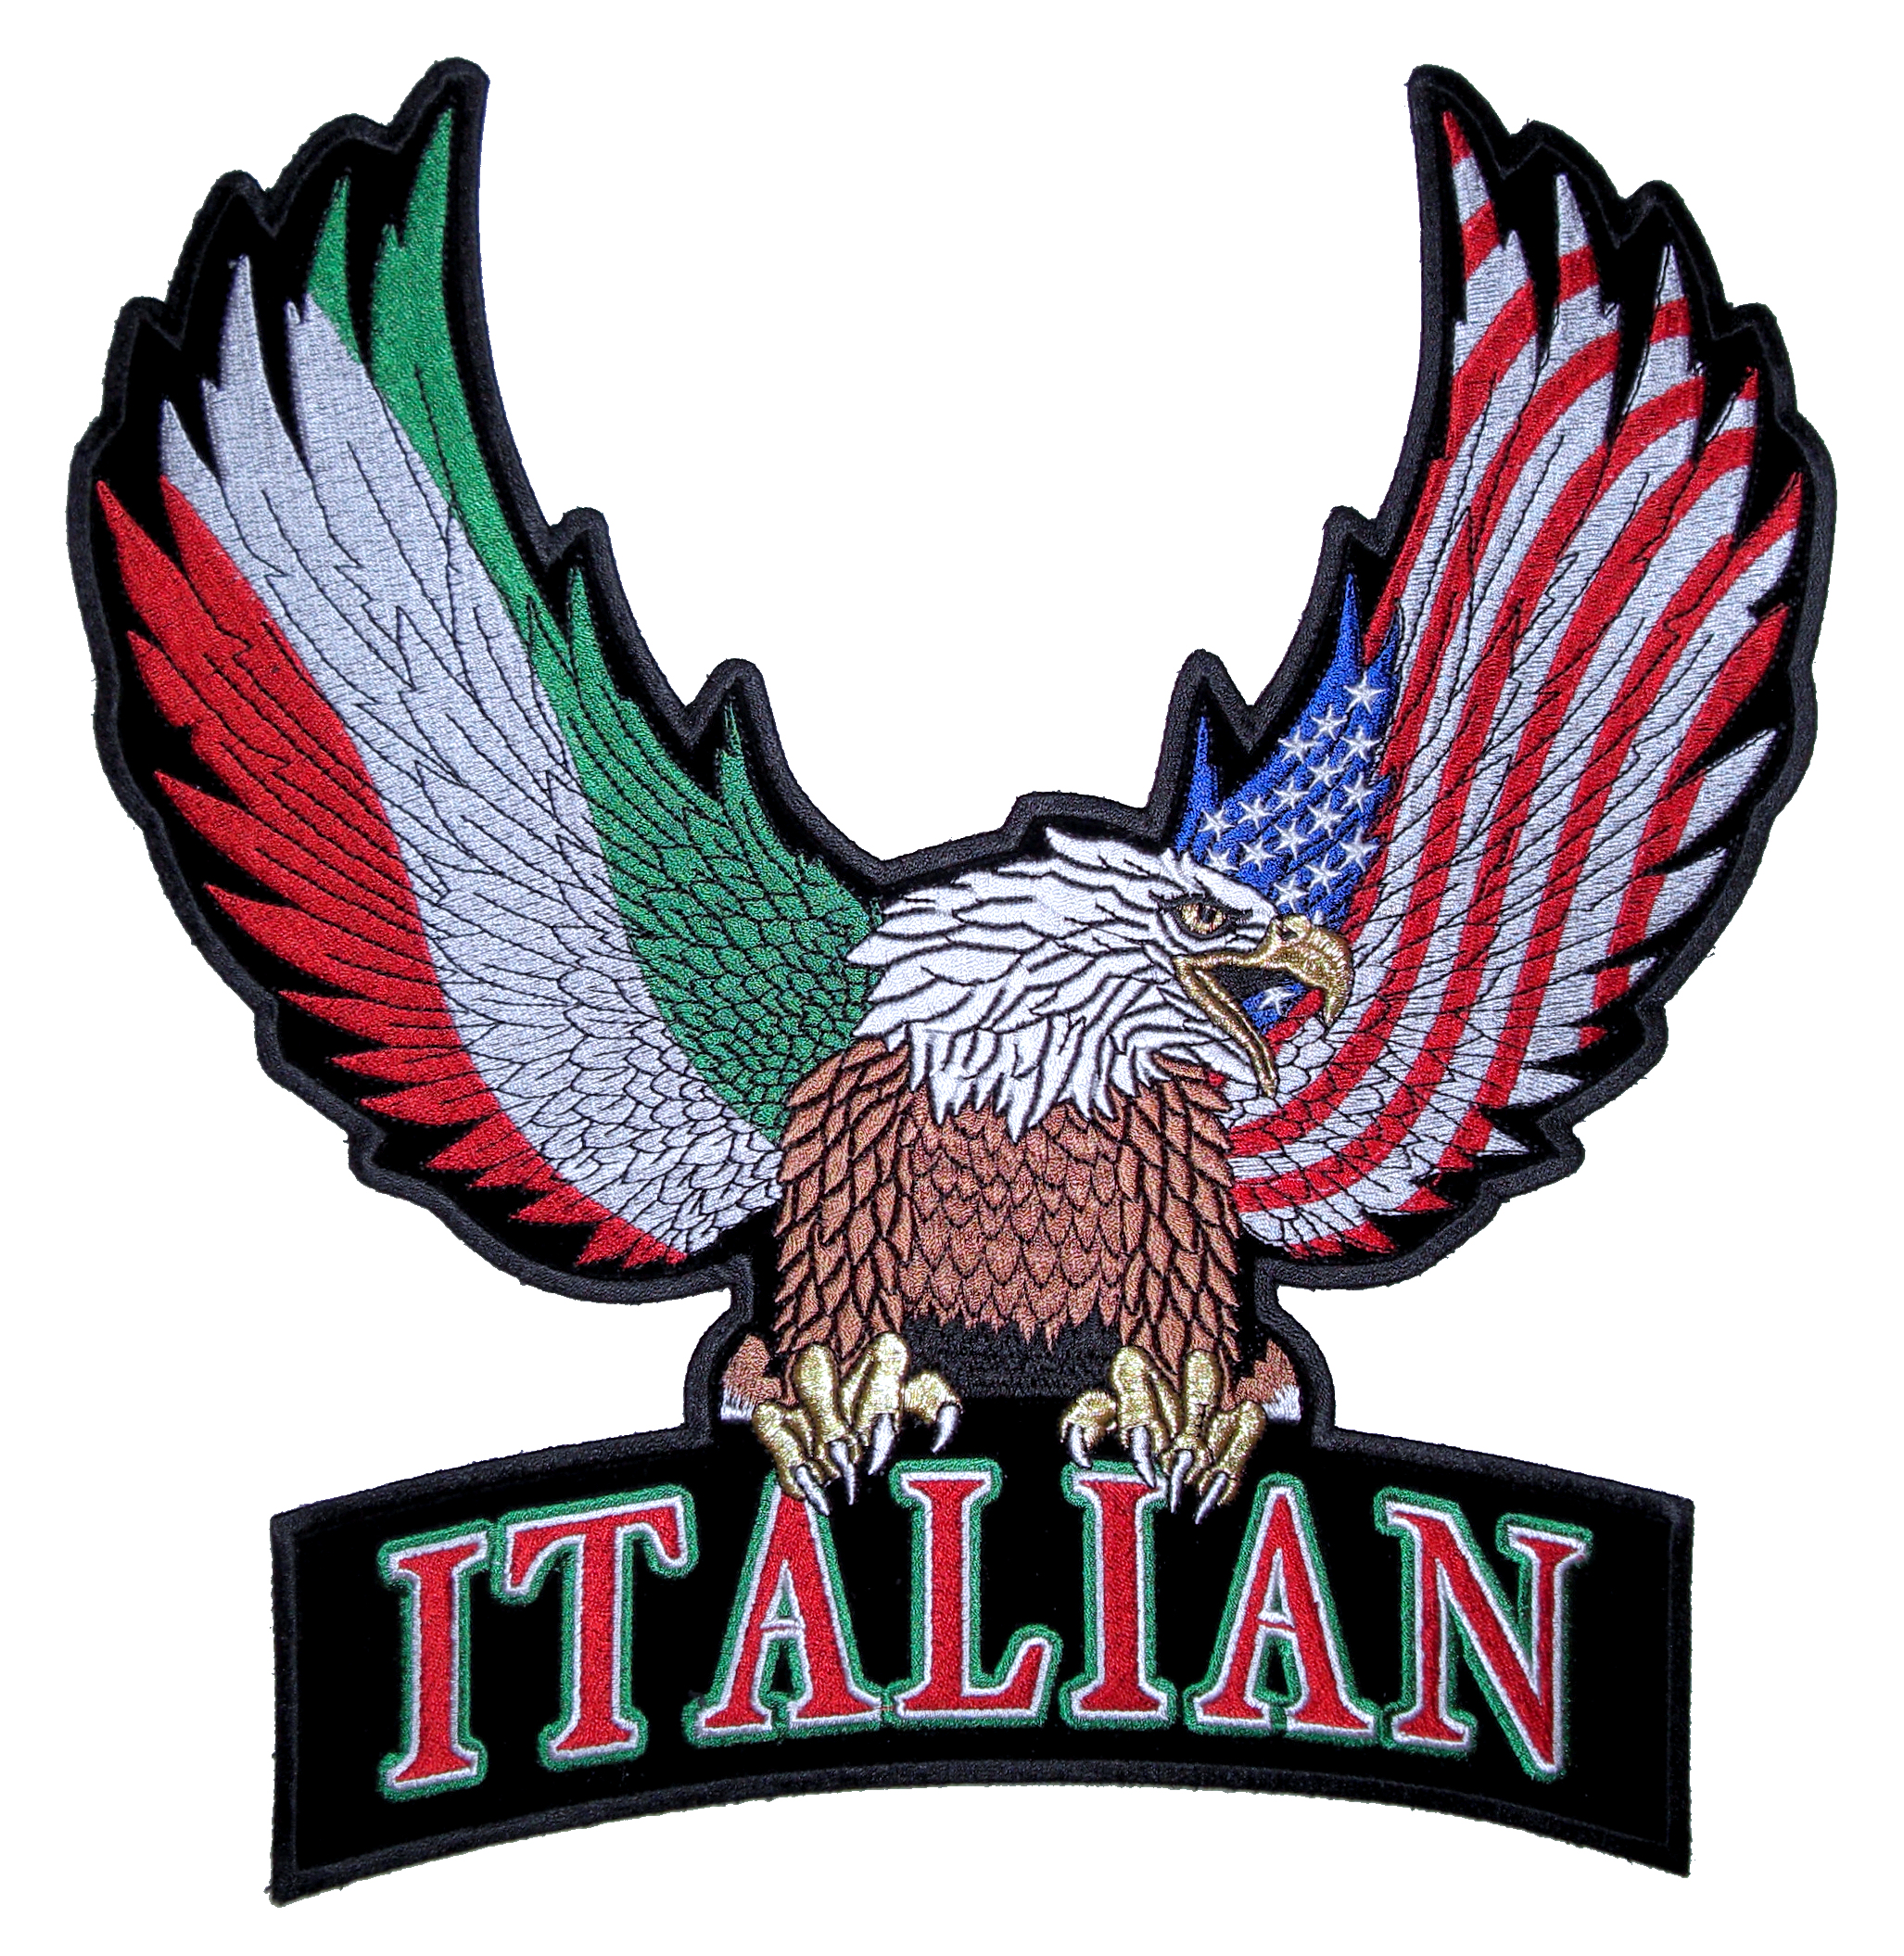 Italian American: Patriotic Eagle With The Italian Flag And American Flag